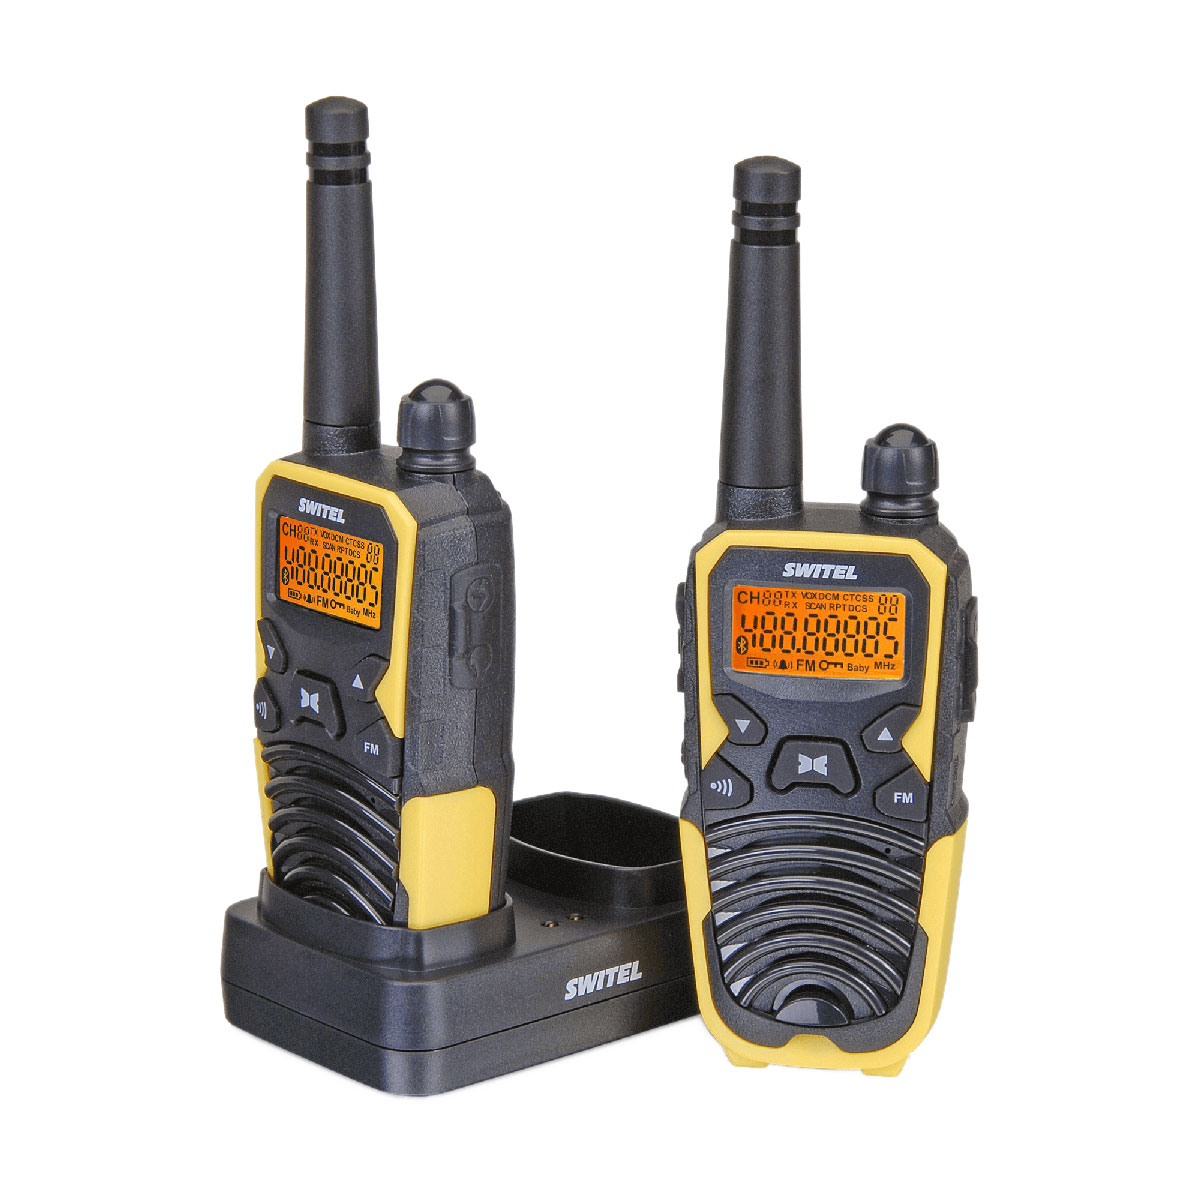 Switel wtf 5700 talkie walkie switel sur - Talkie walkie professionnel longue portee ...